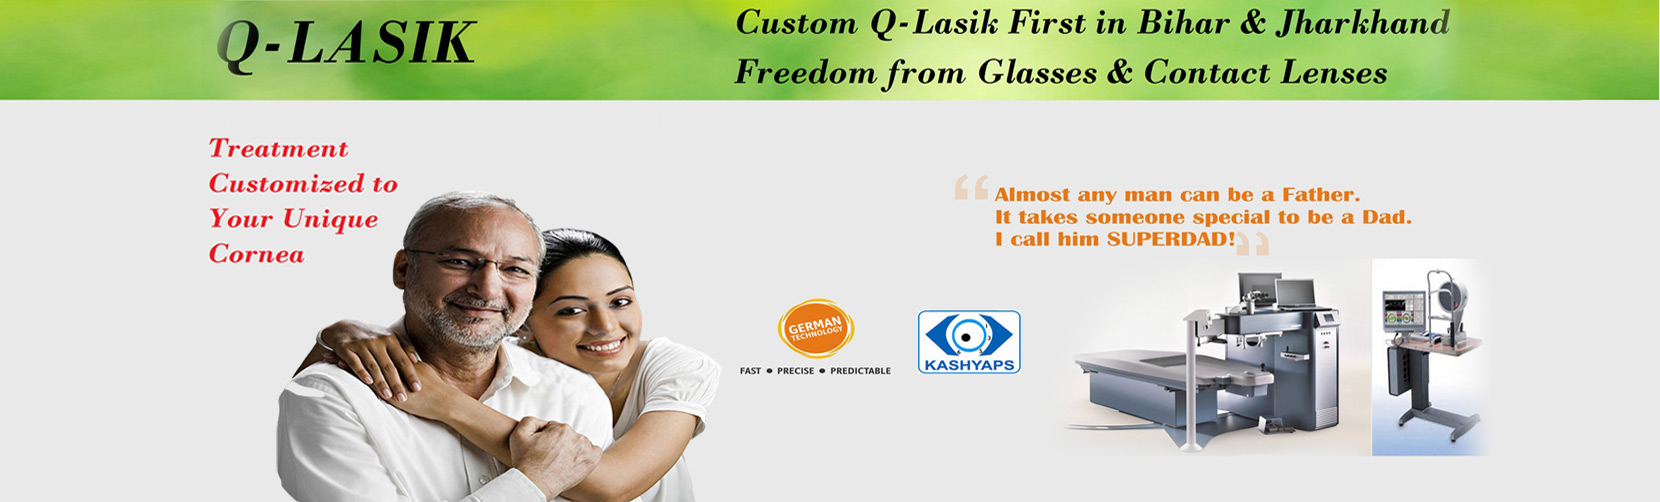 Best femto laser cataract surgery, Best femto lasik Surgery, Best eye hospital in India, NABH accredited eye hospitals in India, best femto laser cataract surgery hospital in india, femto laser cataract surgery , best eye hospital in india, Best Cataract Eye surgery hospital India, top 10 Cataract Eye surgery hospital India, top 10 Laser Eye Surgery in India, top 5 eye hospital in India, top 10 eye hospital in India